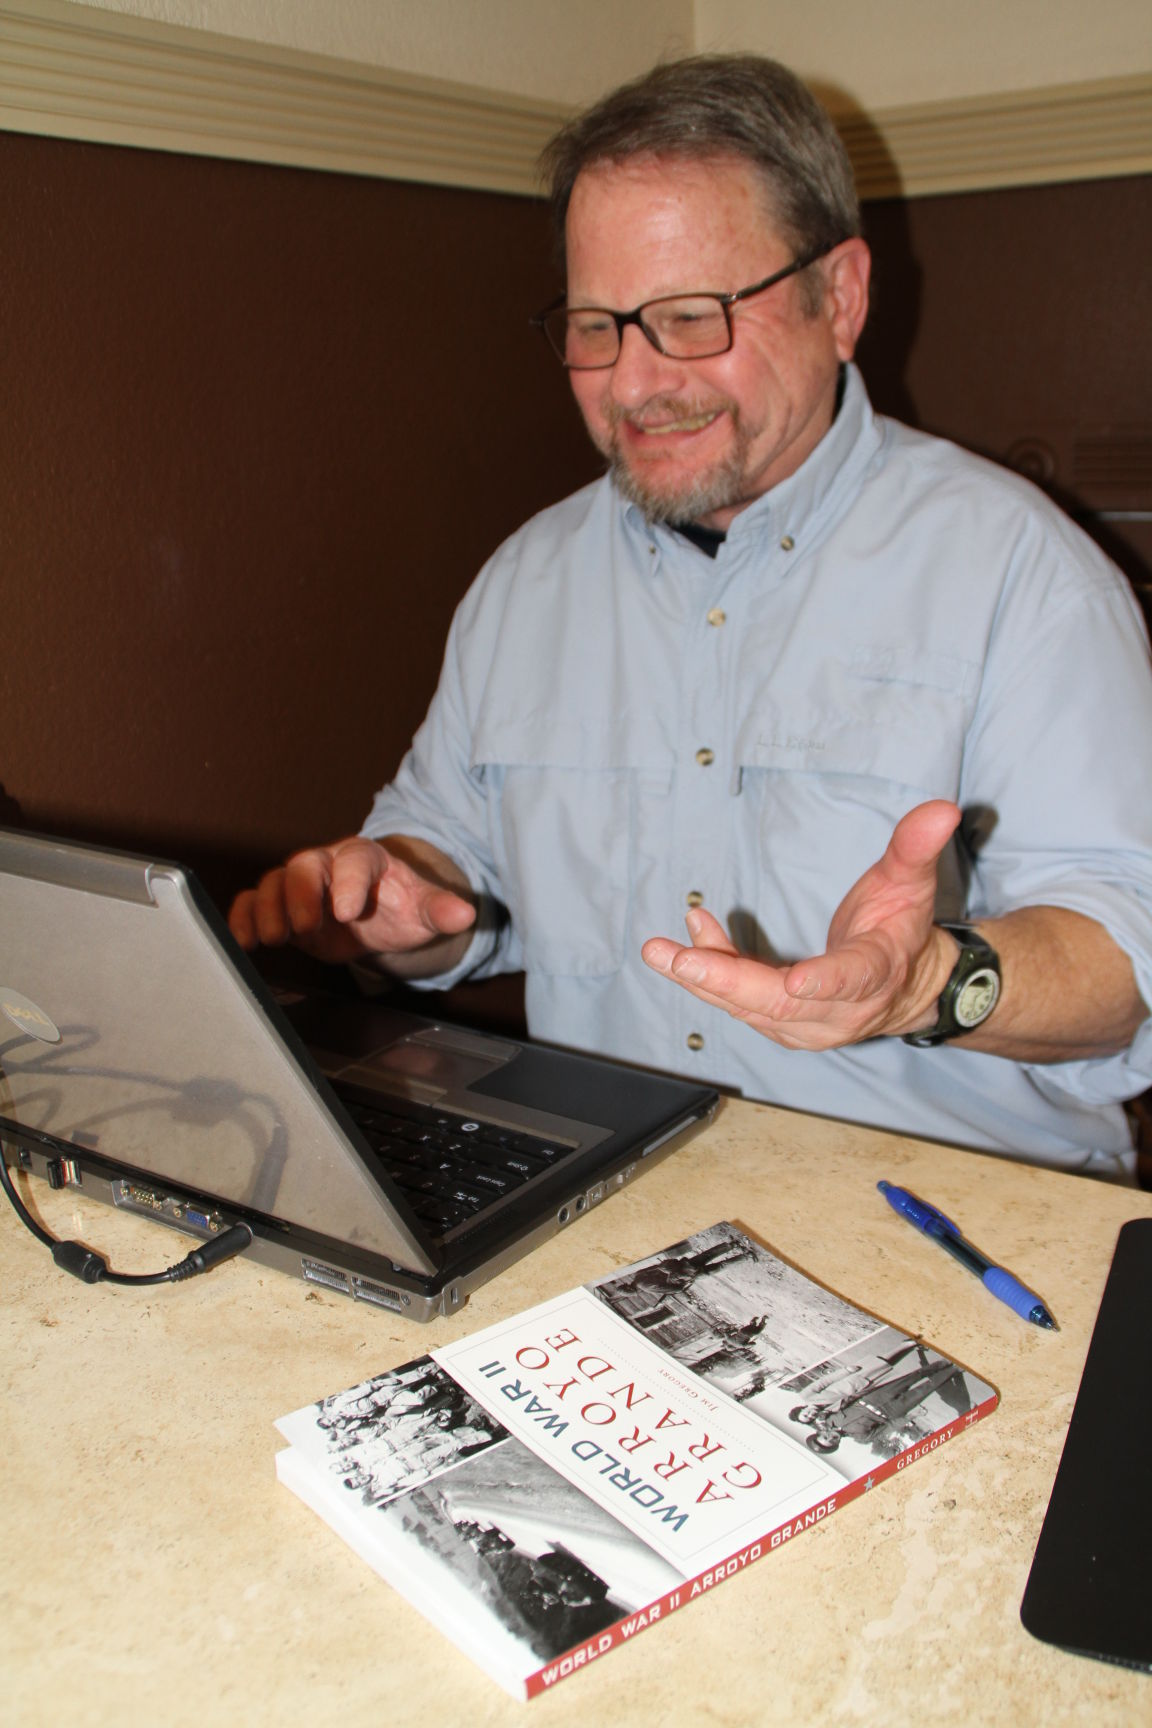 Jim Gregory with book